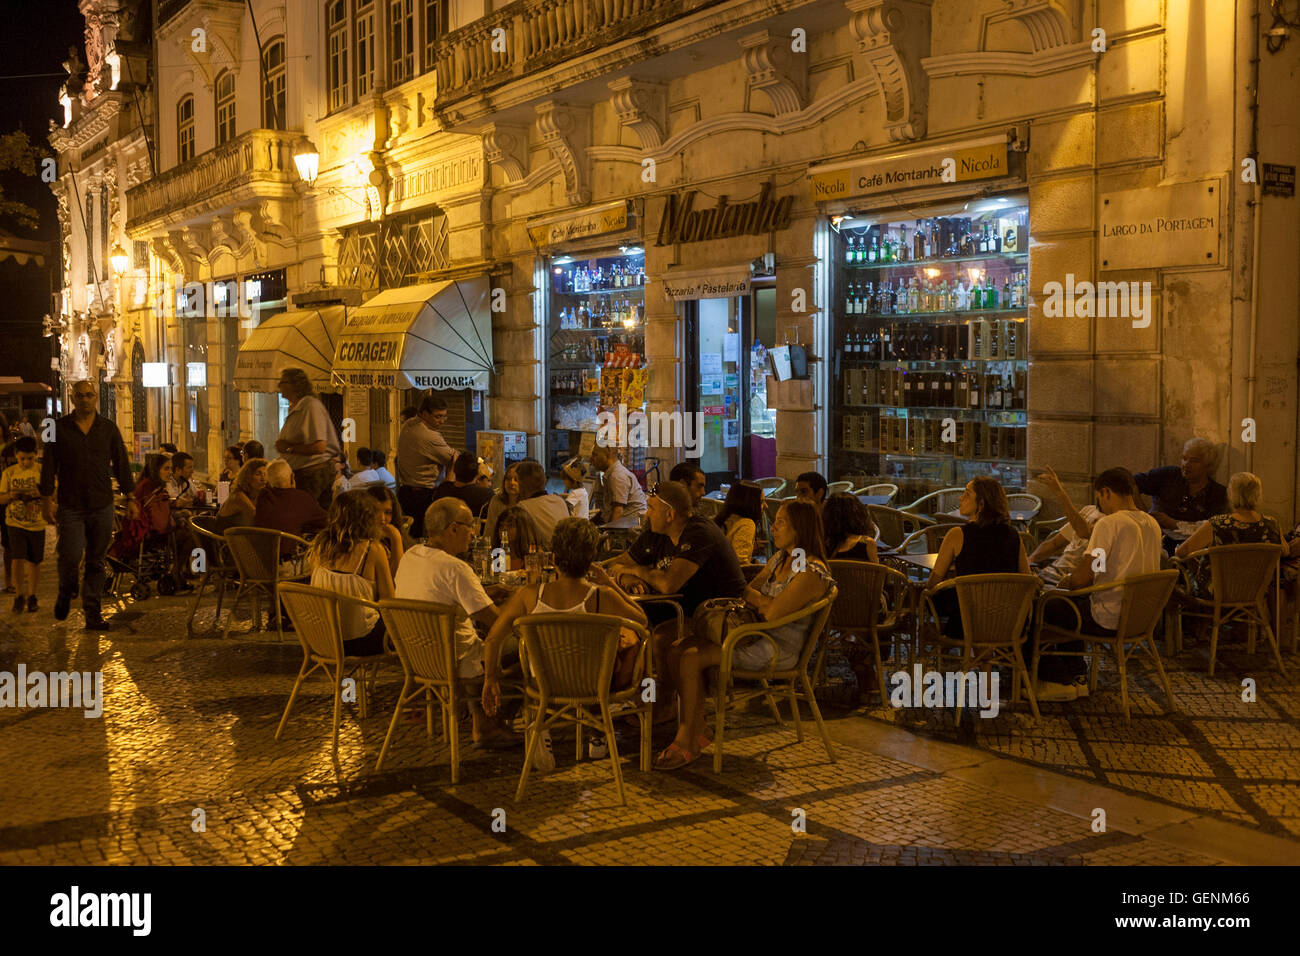 The busy Cafe Montanha in Largo da Portagem at night in Coimbra, Portugal. - Stock Image